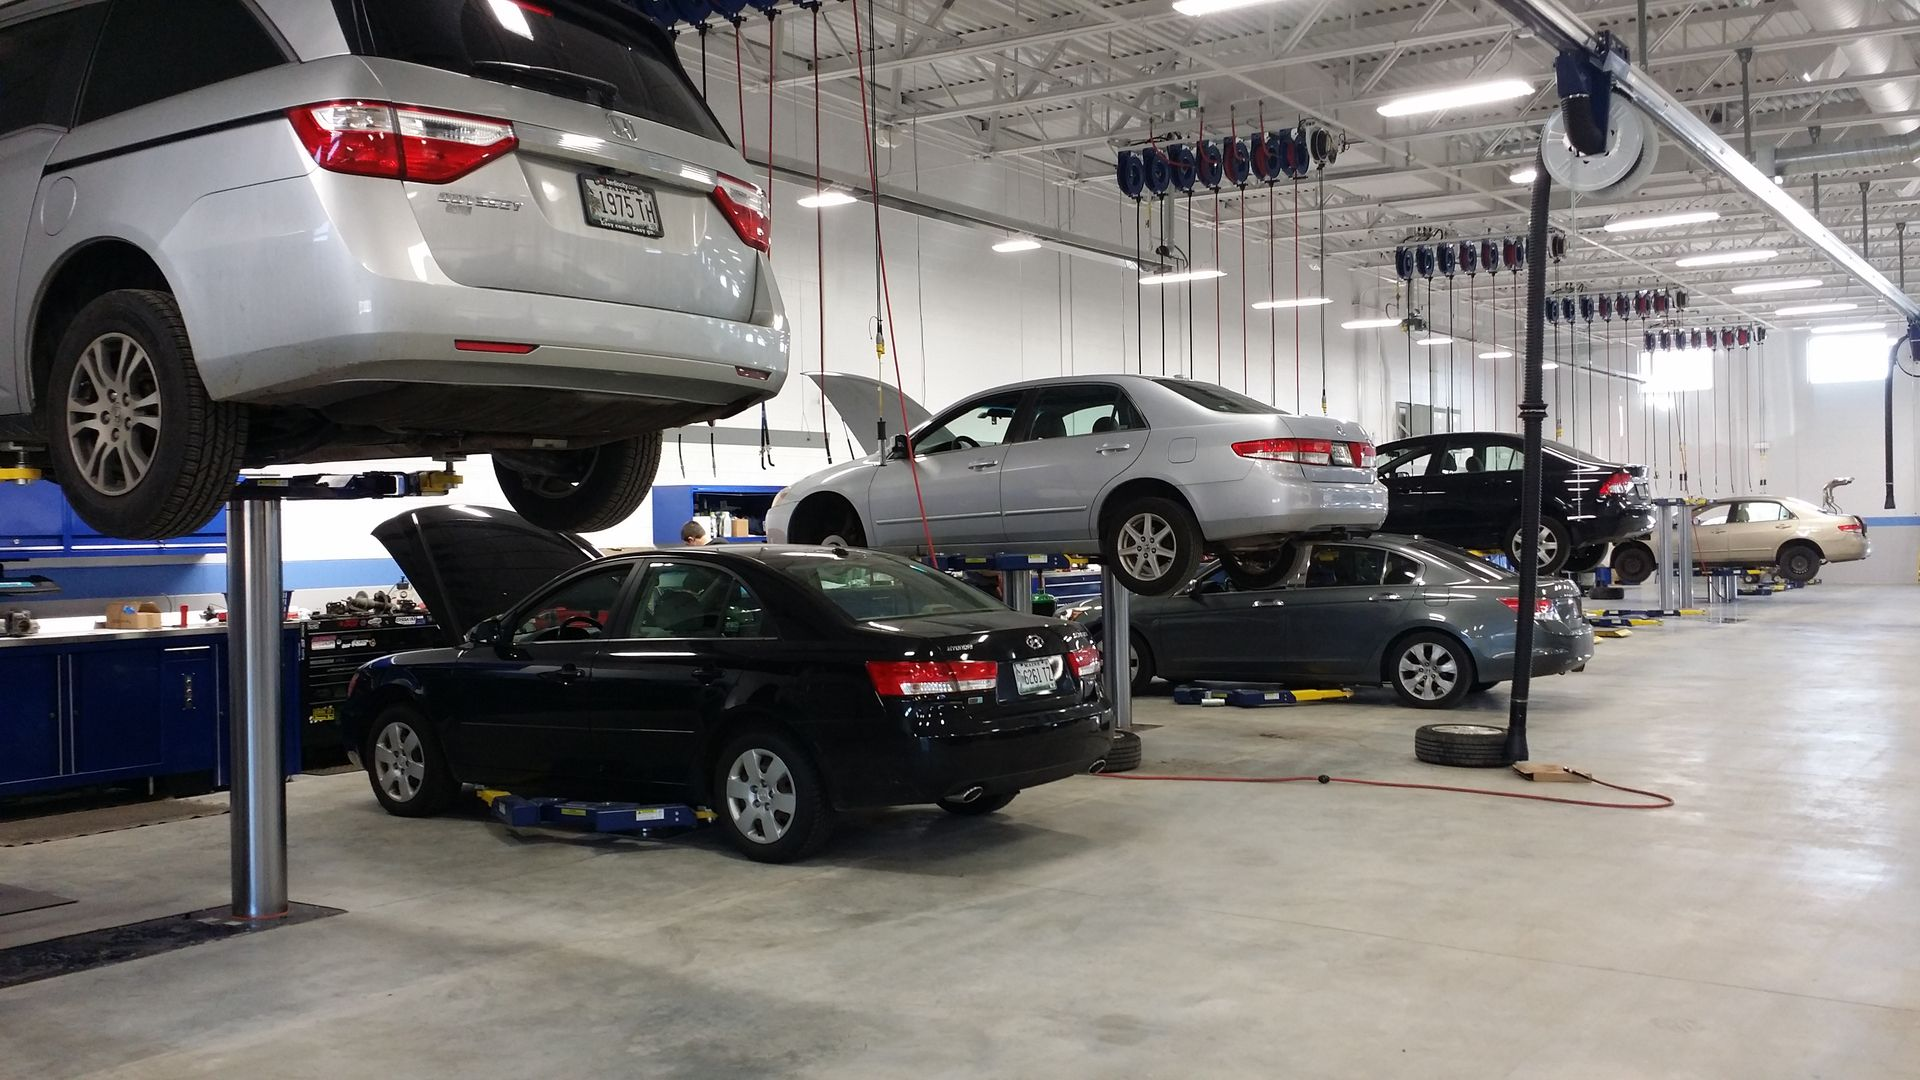 Used Car Lifts For Sale Near Me New Used Lifts New Cars 2015